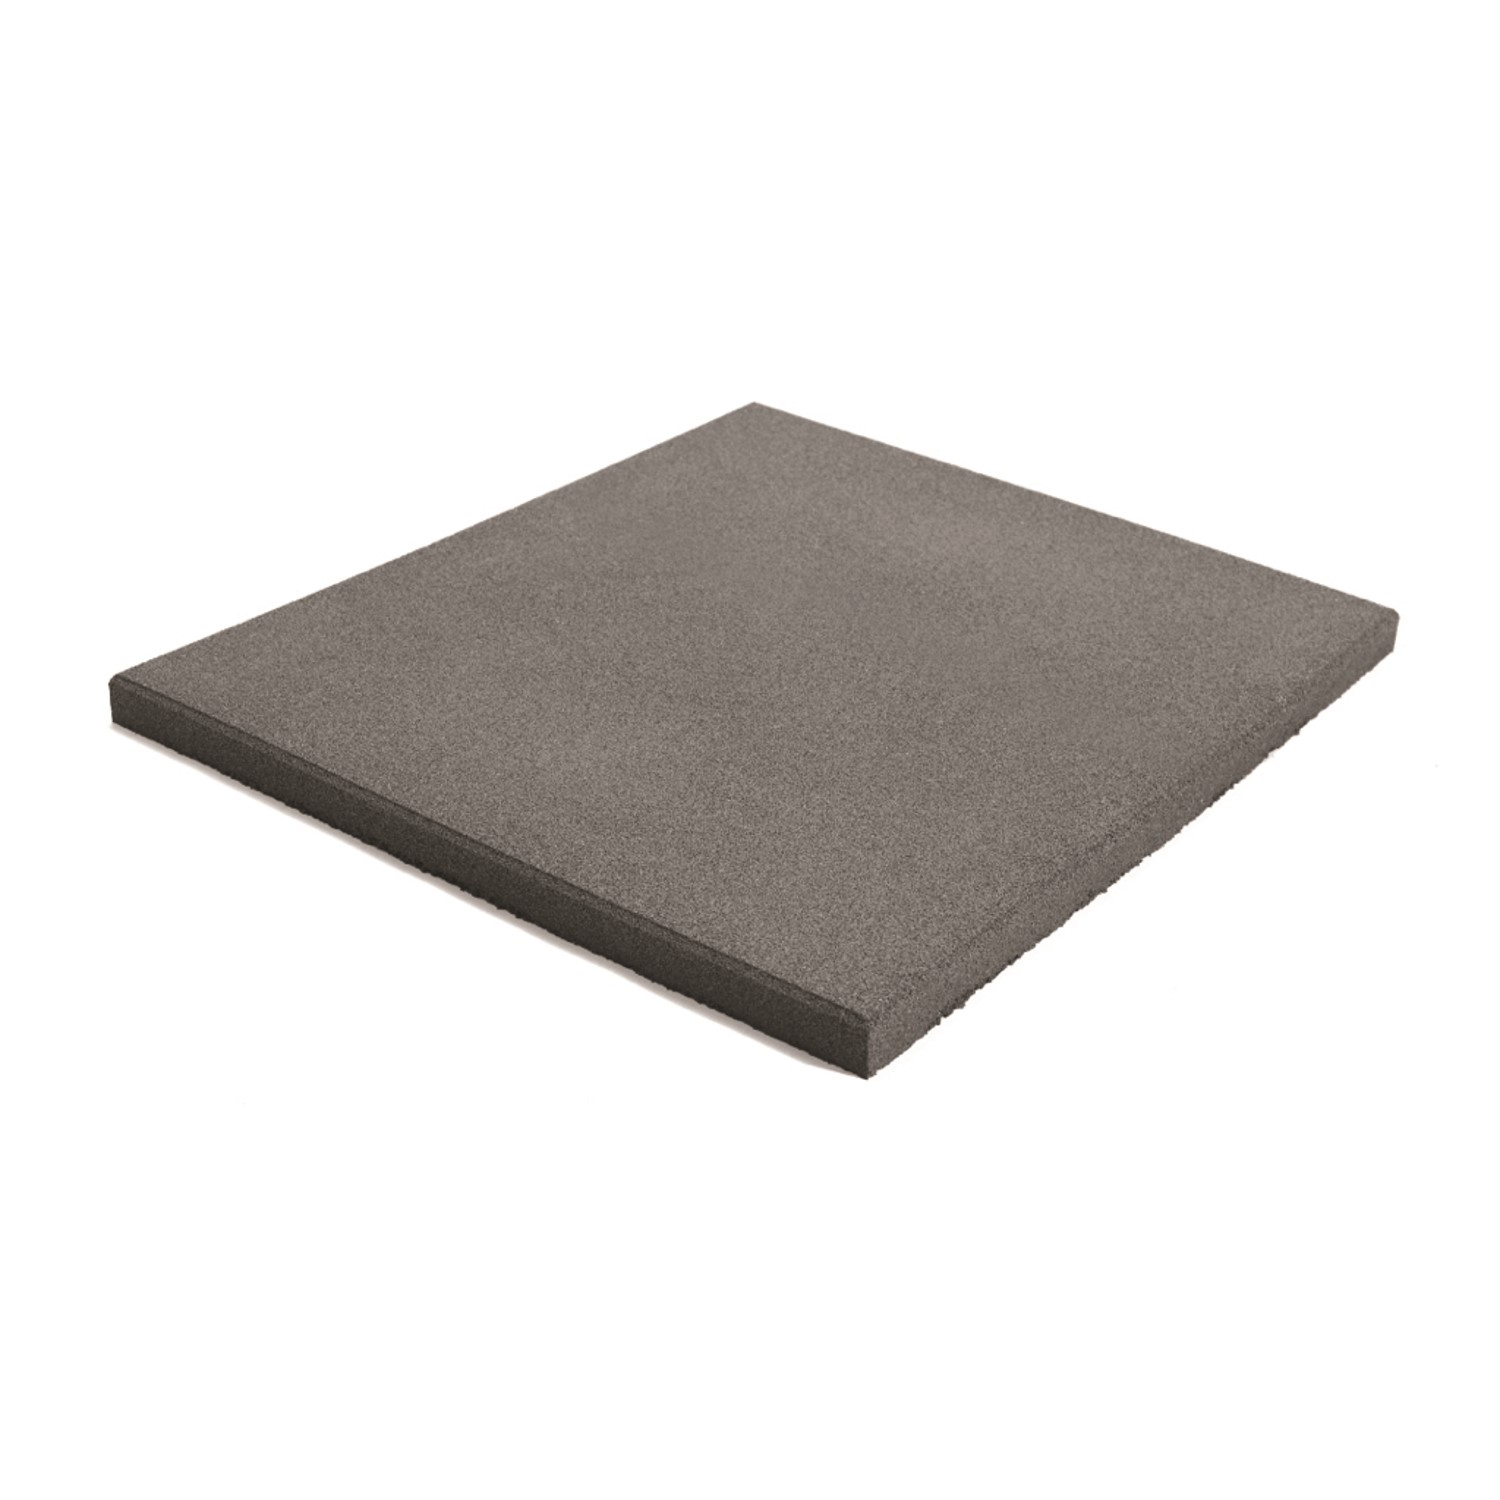 Jordan Activ Flooring - 30mm (Grey)